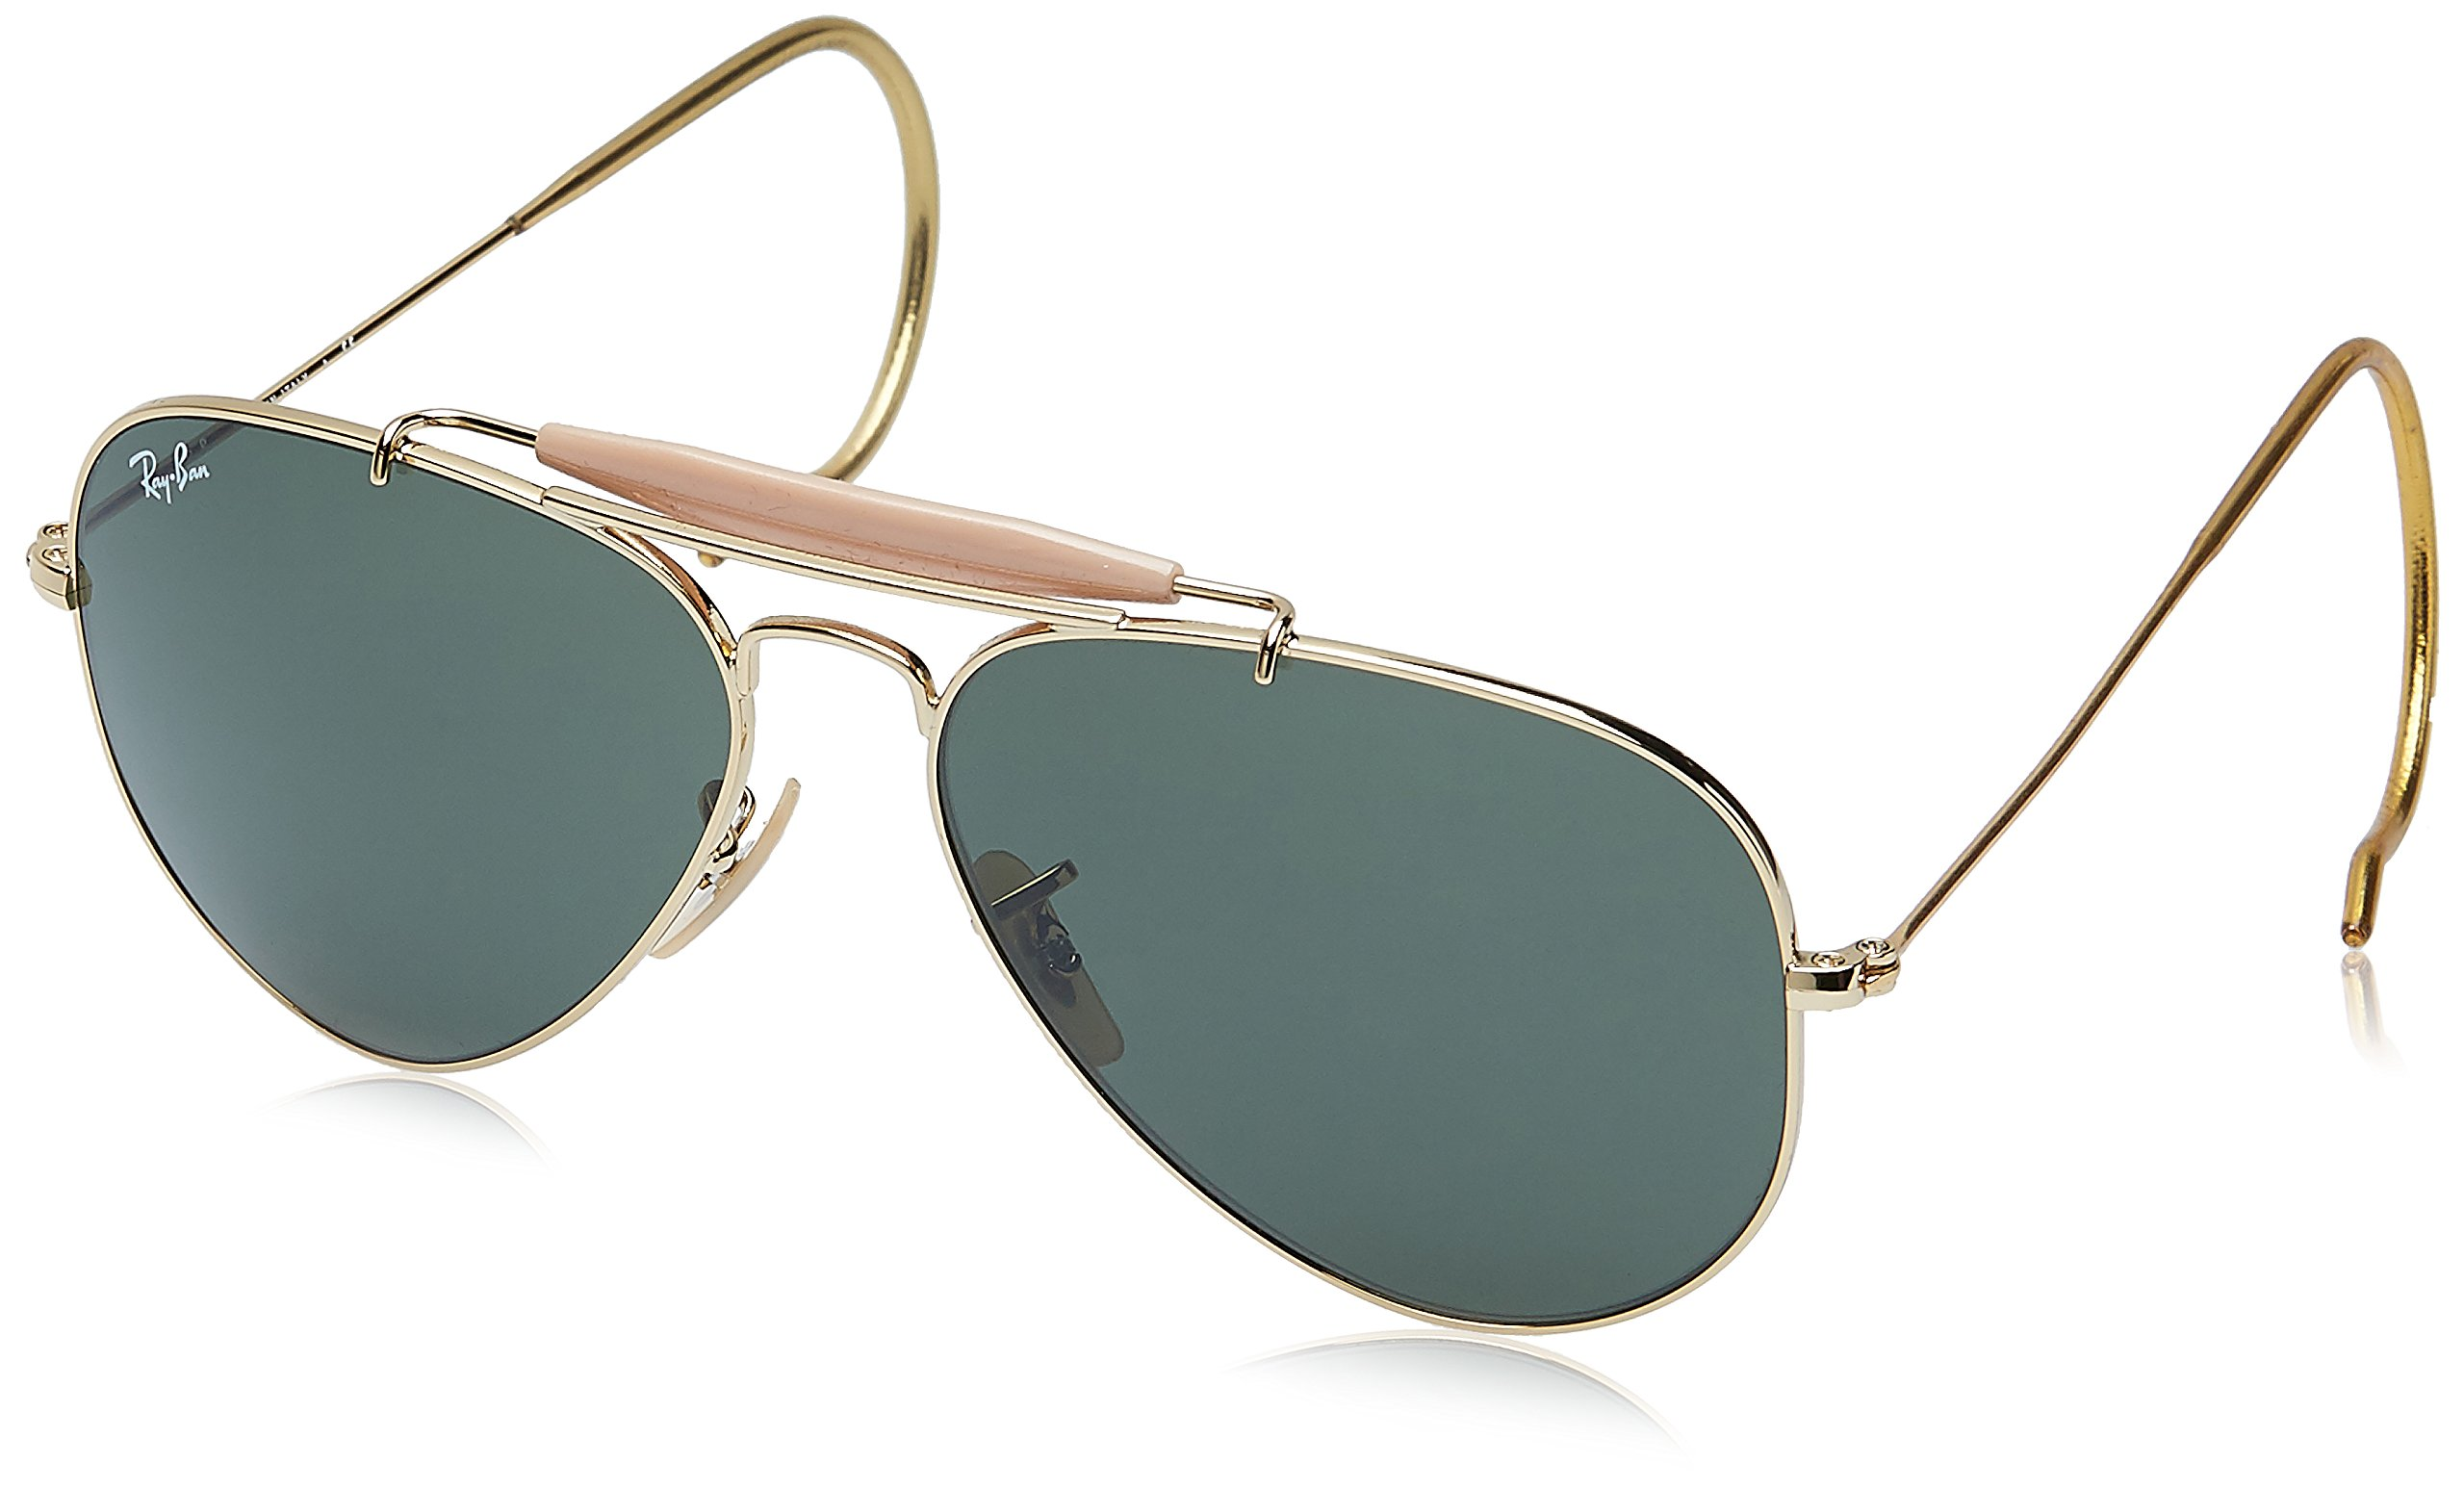 Ray Ban Sunglasses RB3030 Outdoorsman L0216 Arista/G-15XLT, 58mm by Ray-Ban